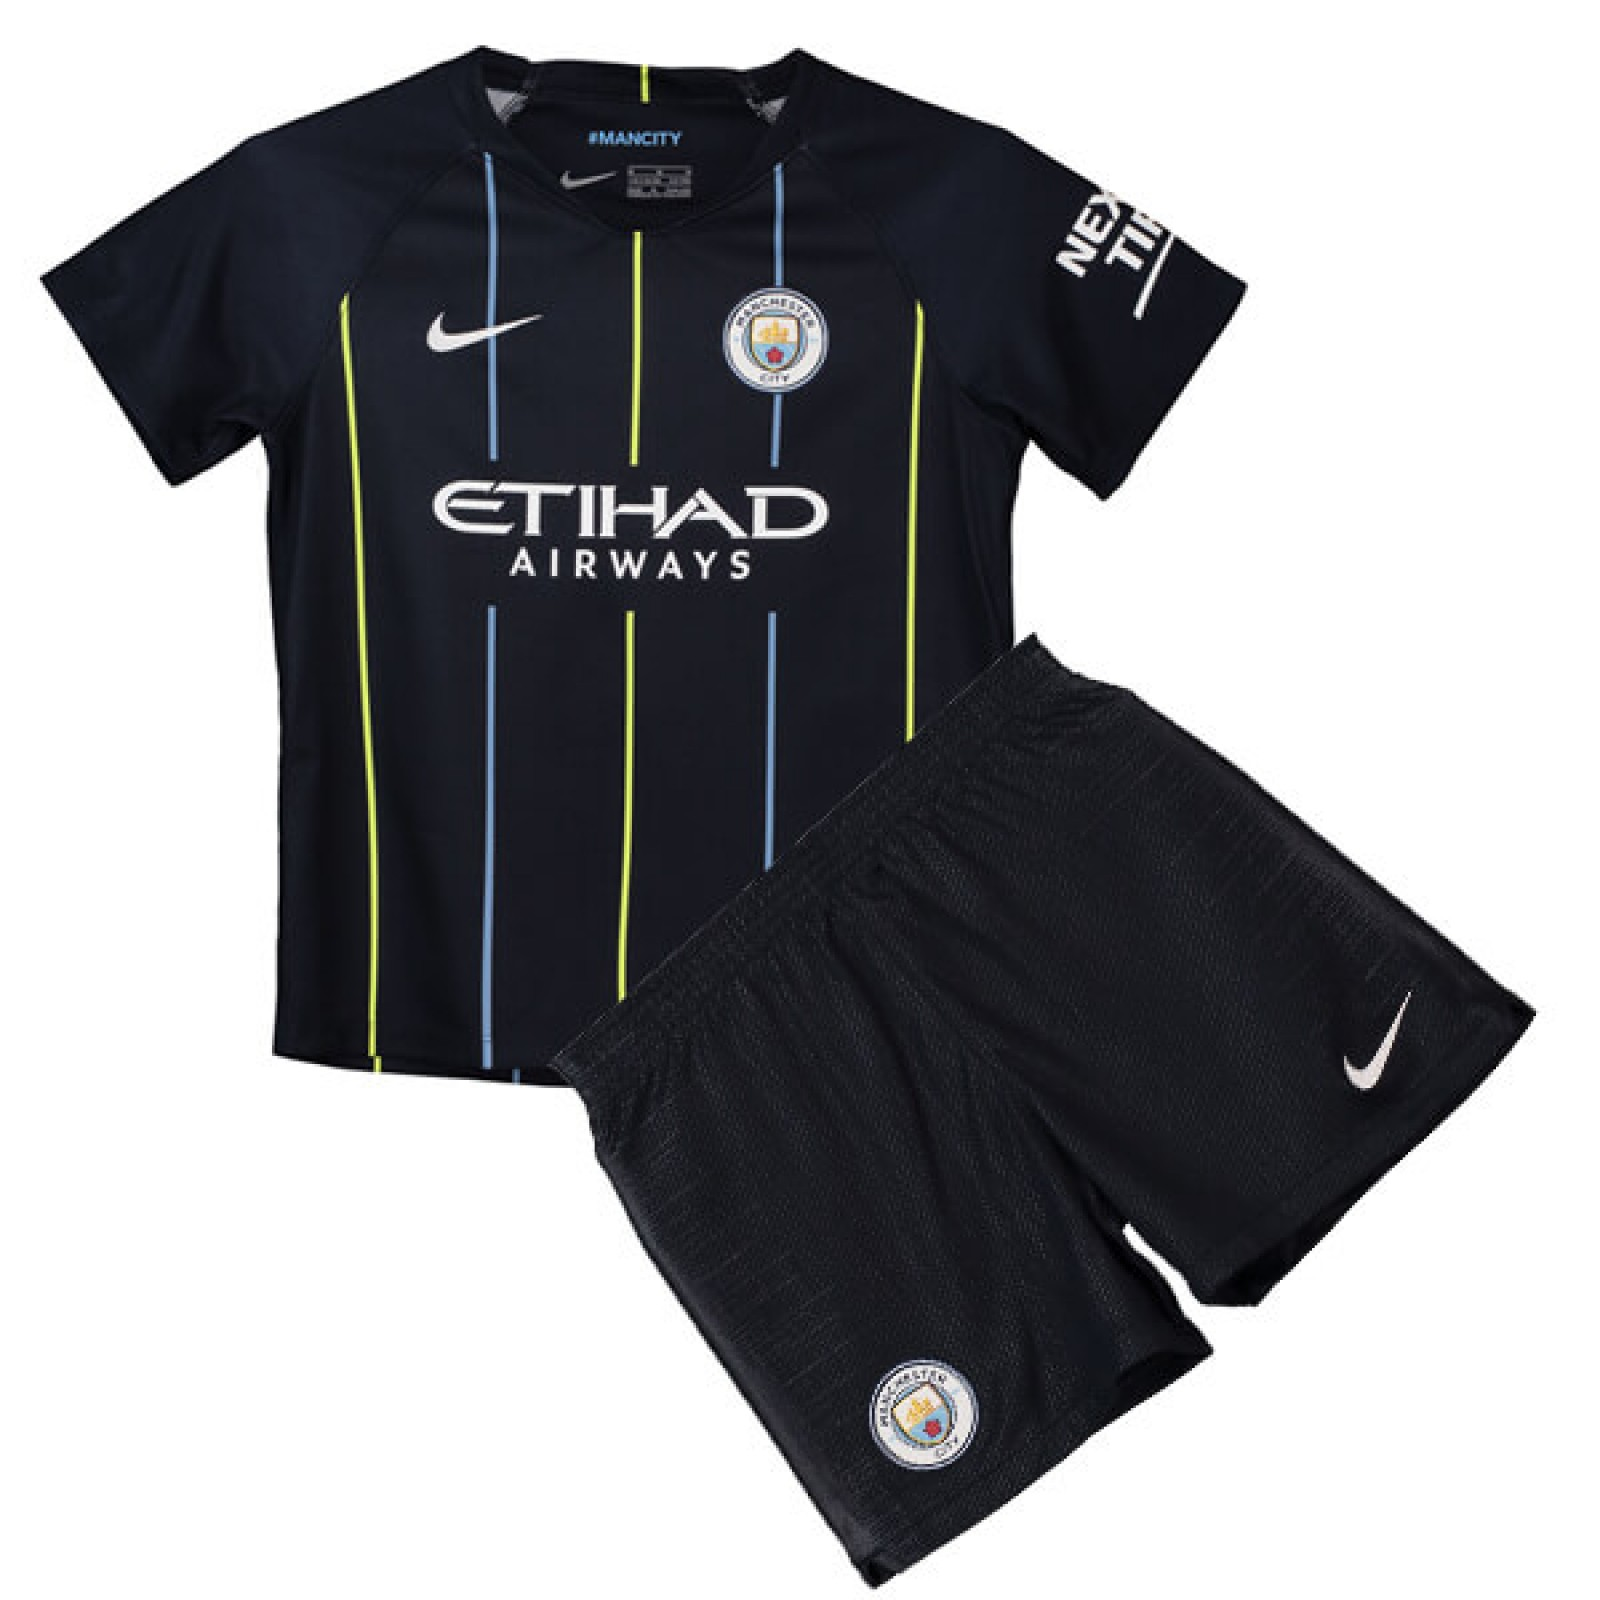 5d09a34bb Childrens Manchester City Away Kit 2018 19 from £30.99